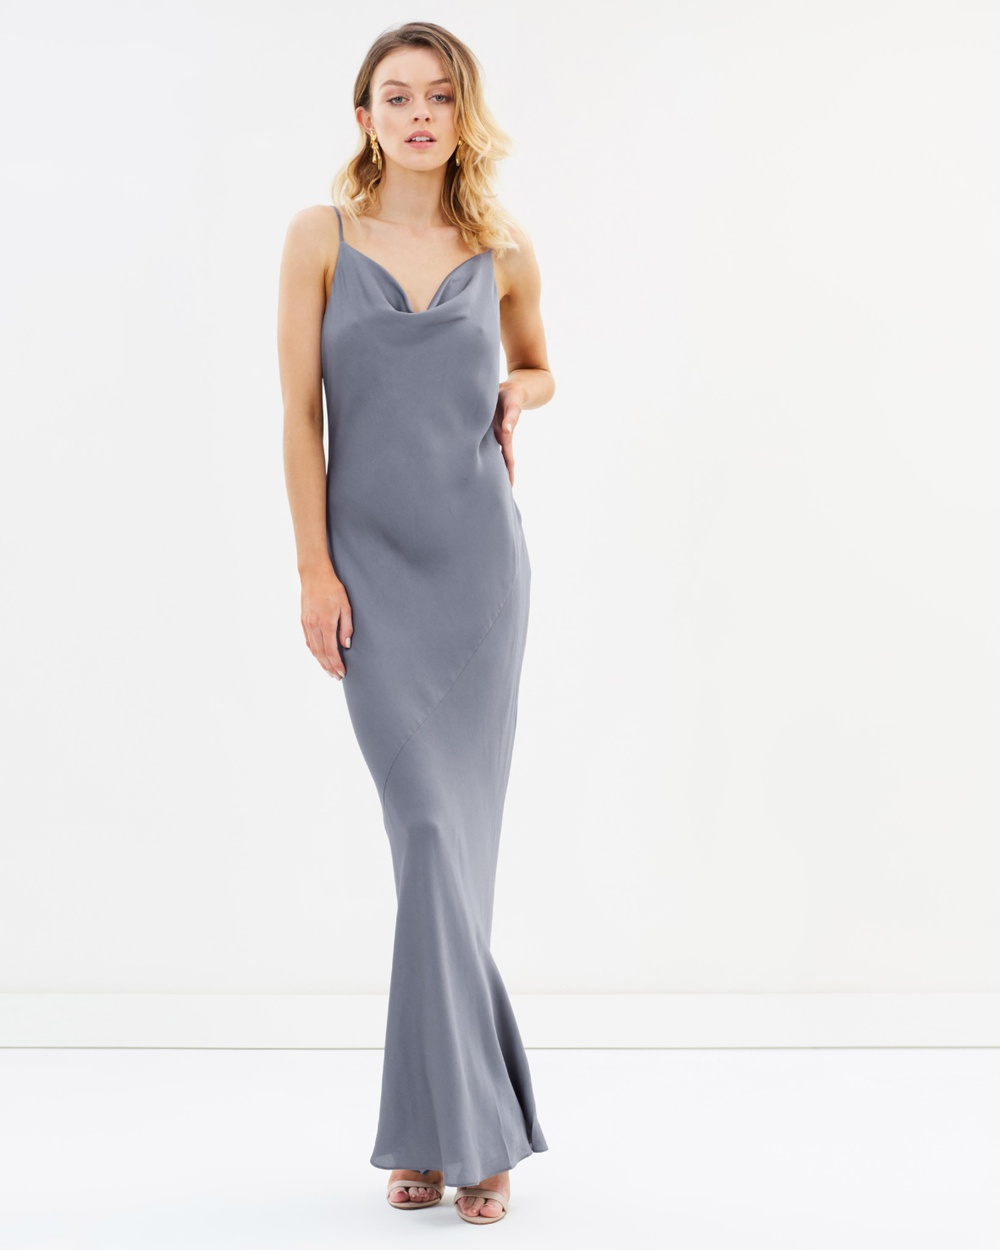 Shona Joy Bias Slip Dress Bridesmaid Dresses Pewter Bias Slip Dress